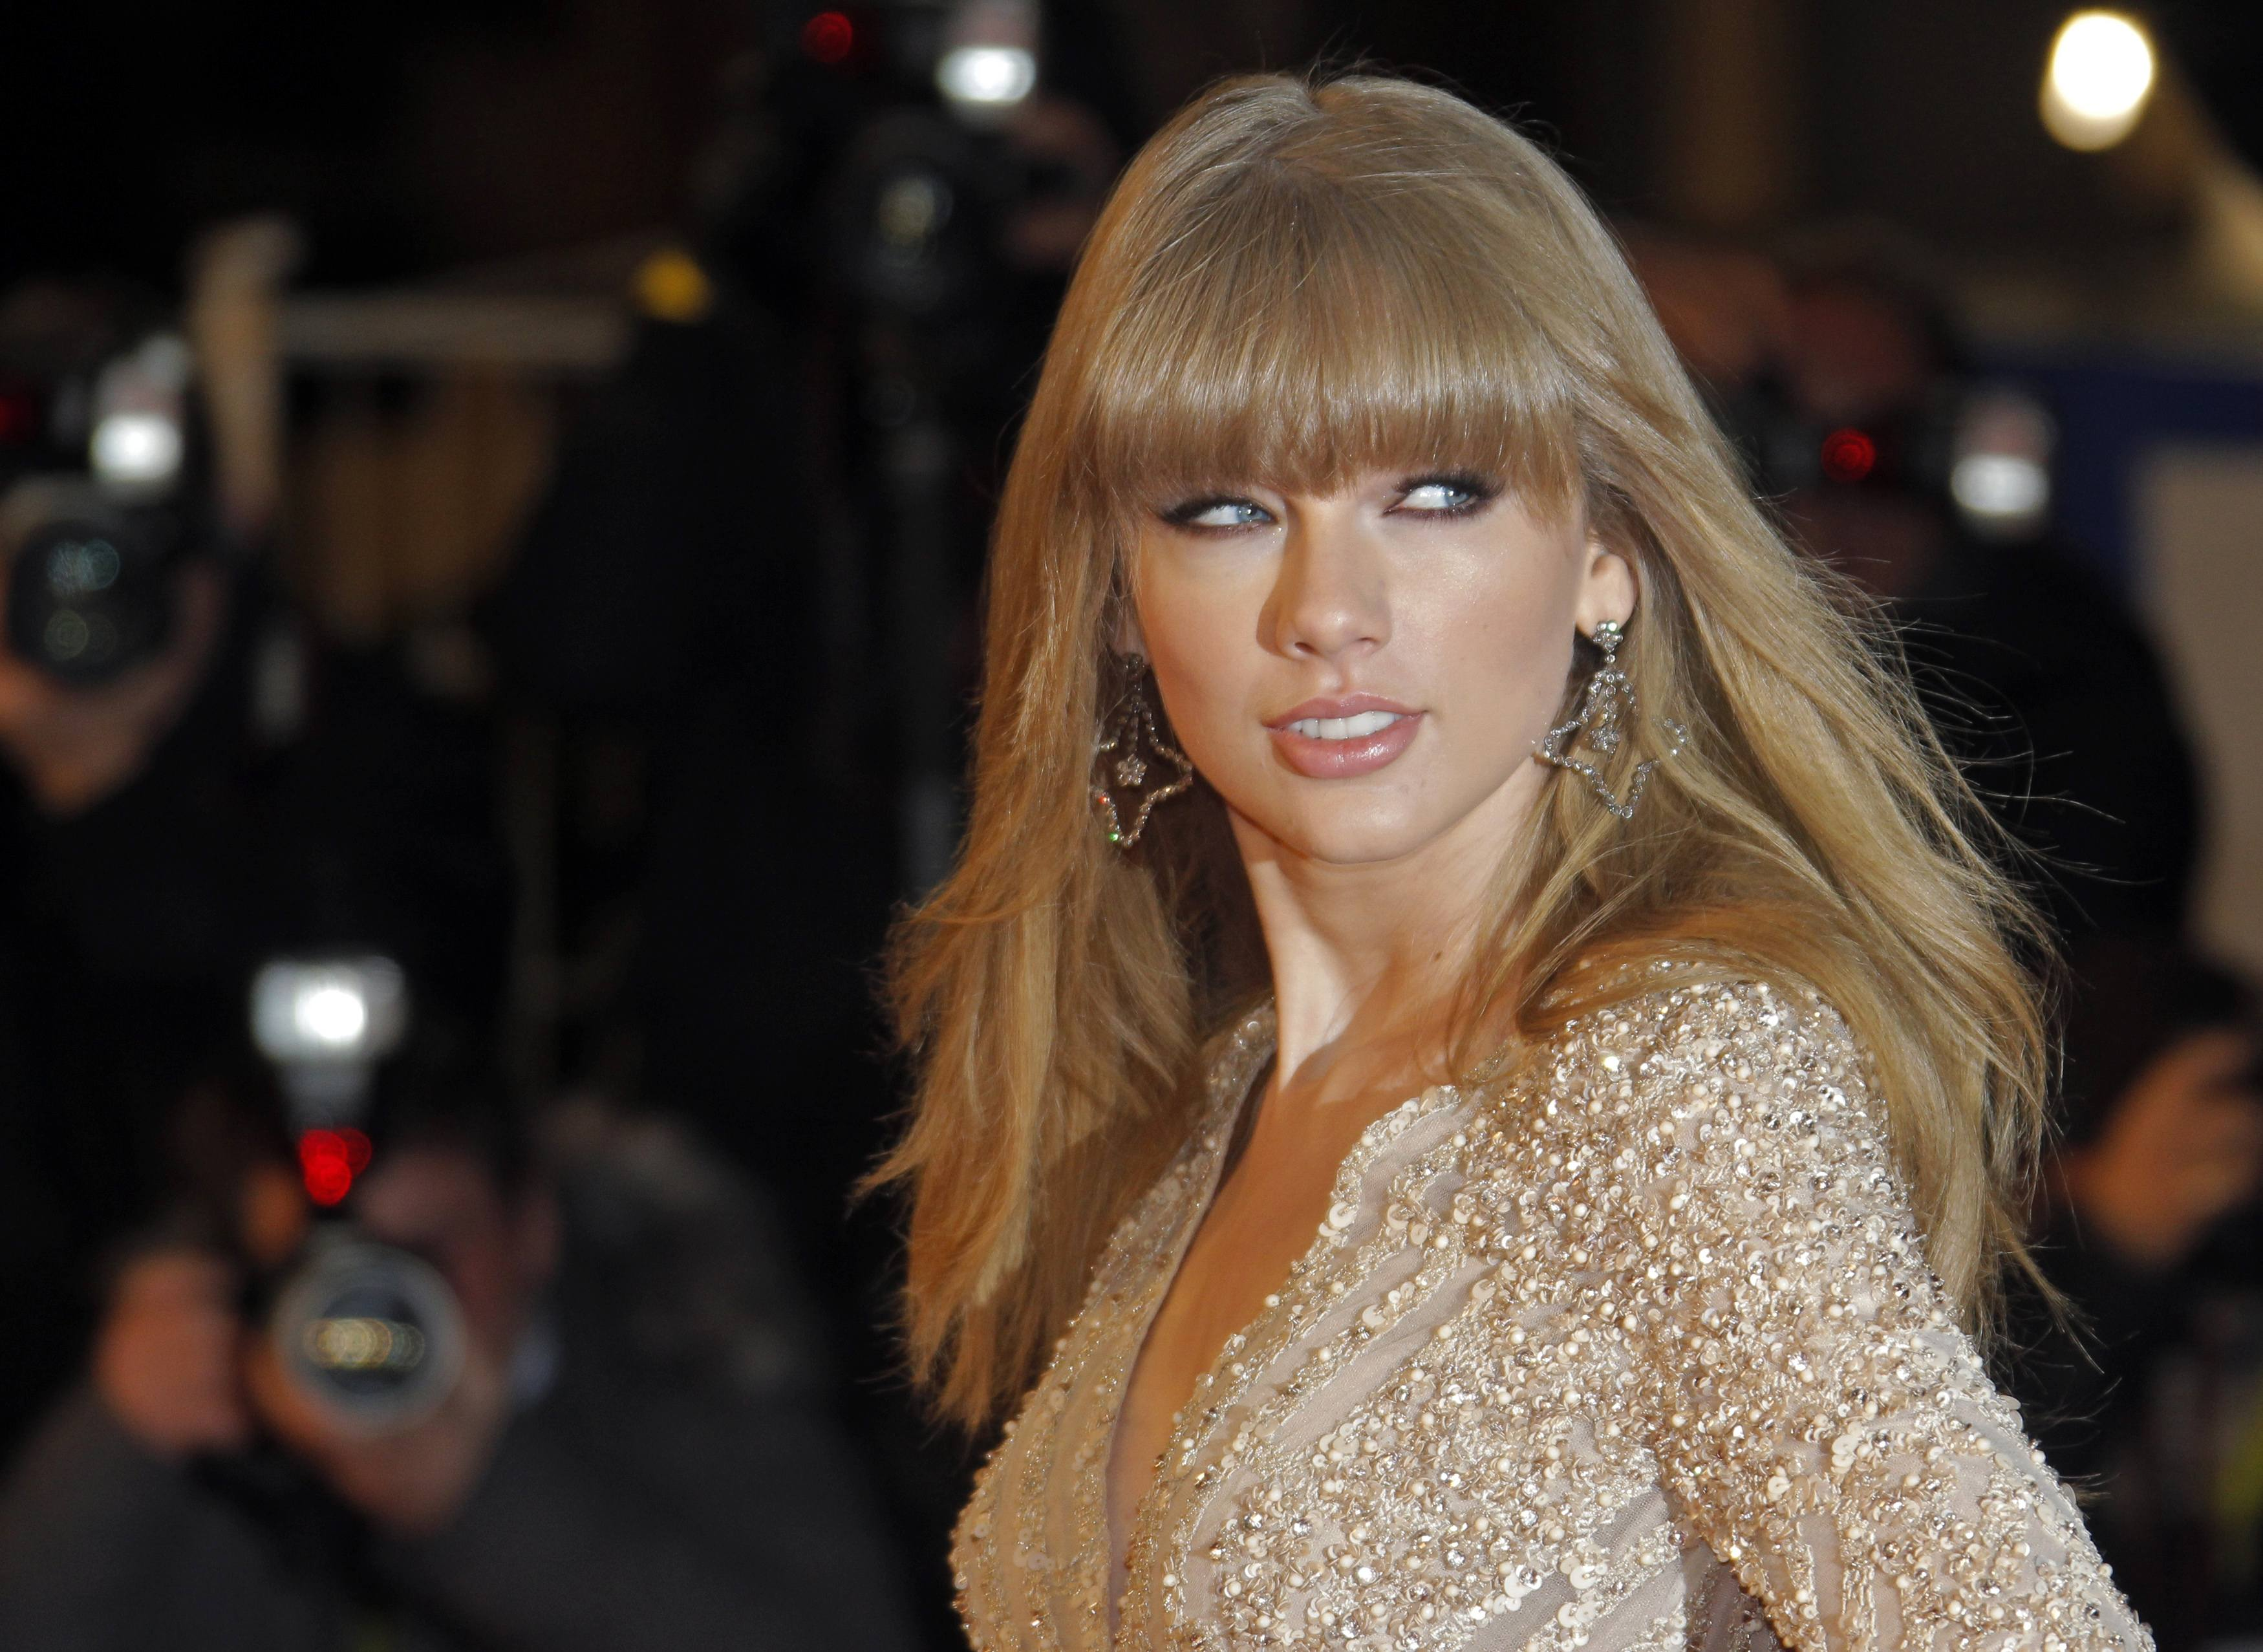 Taylor Swift Sex Tape Is Facebook Scam